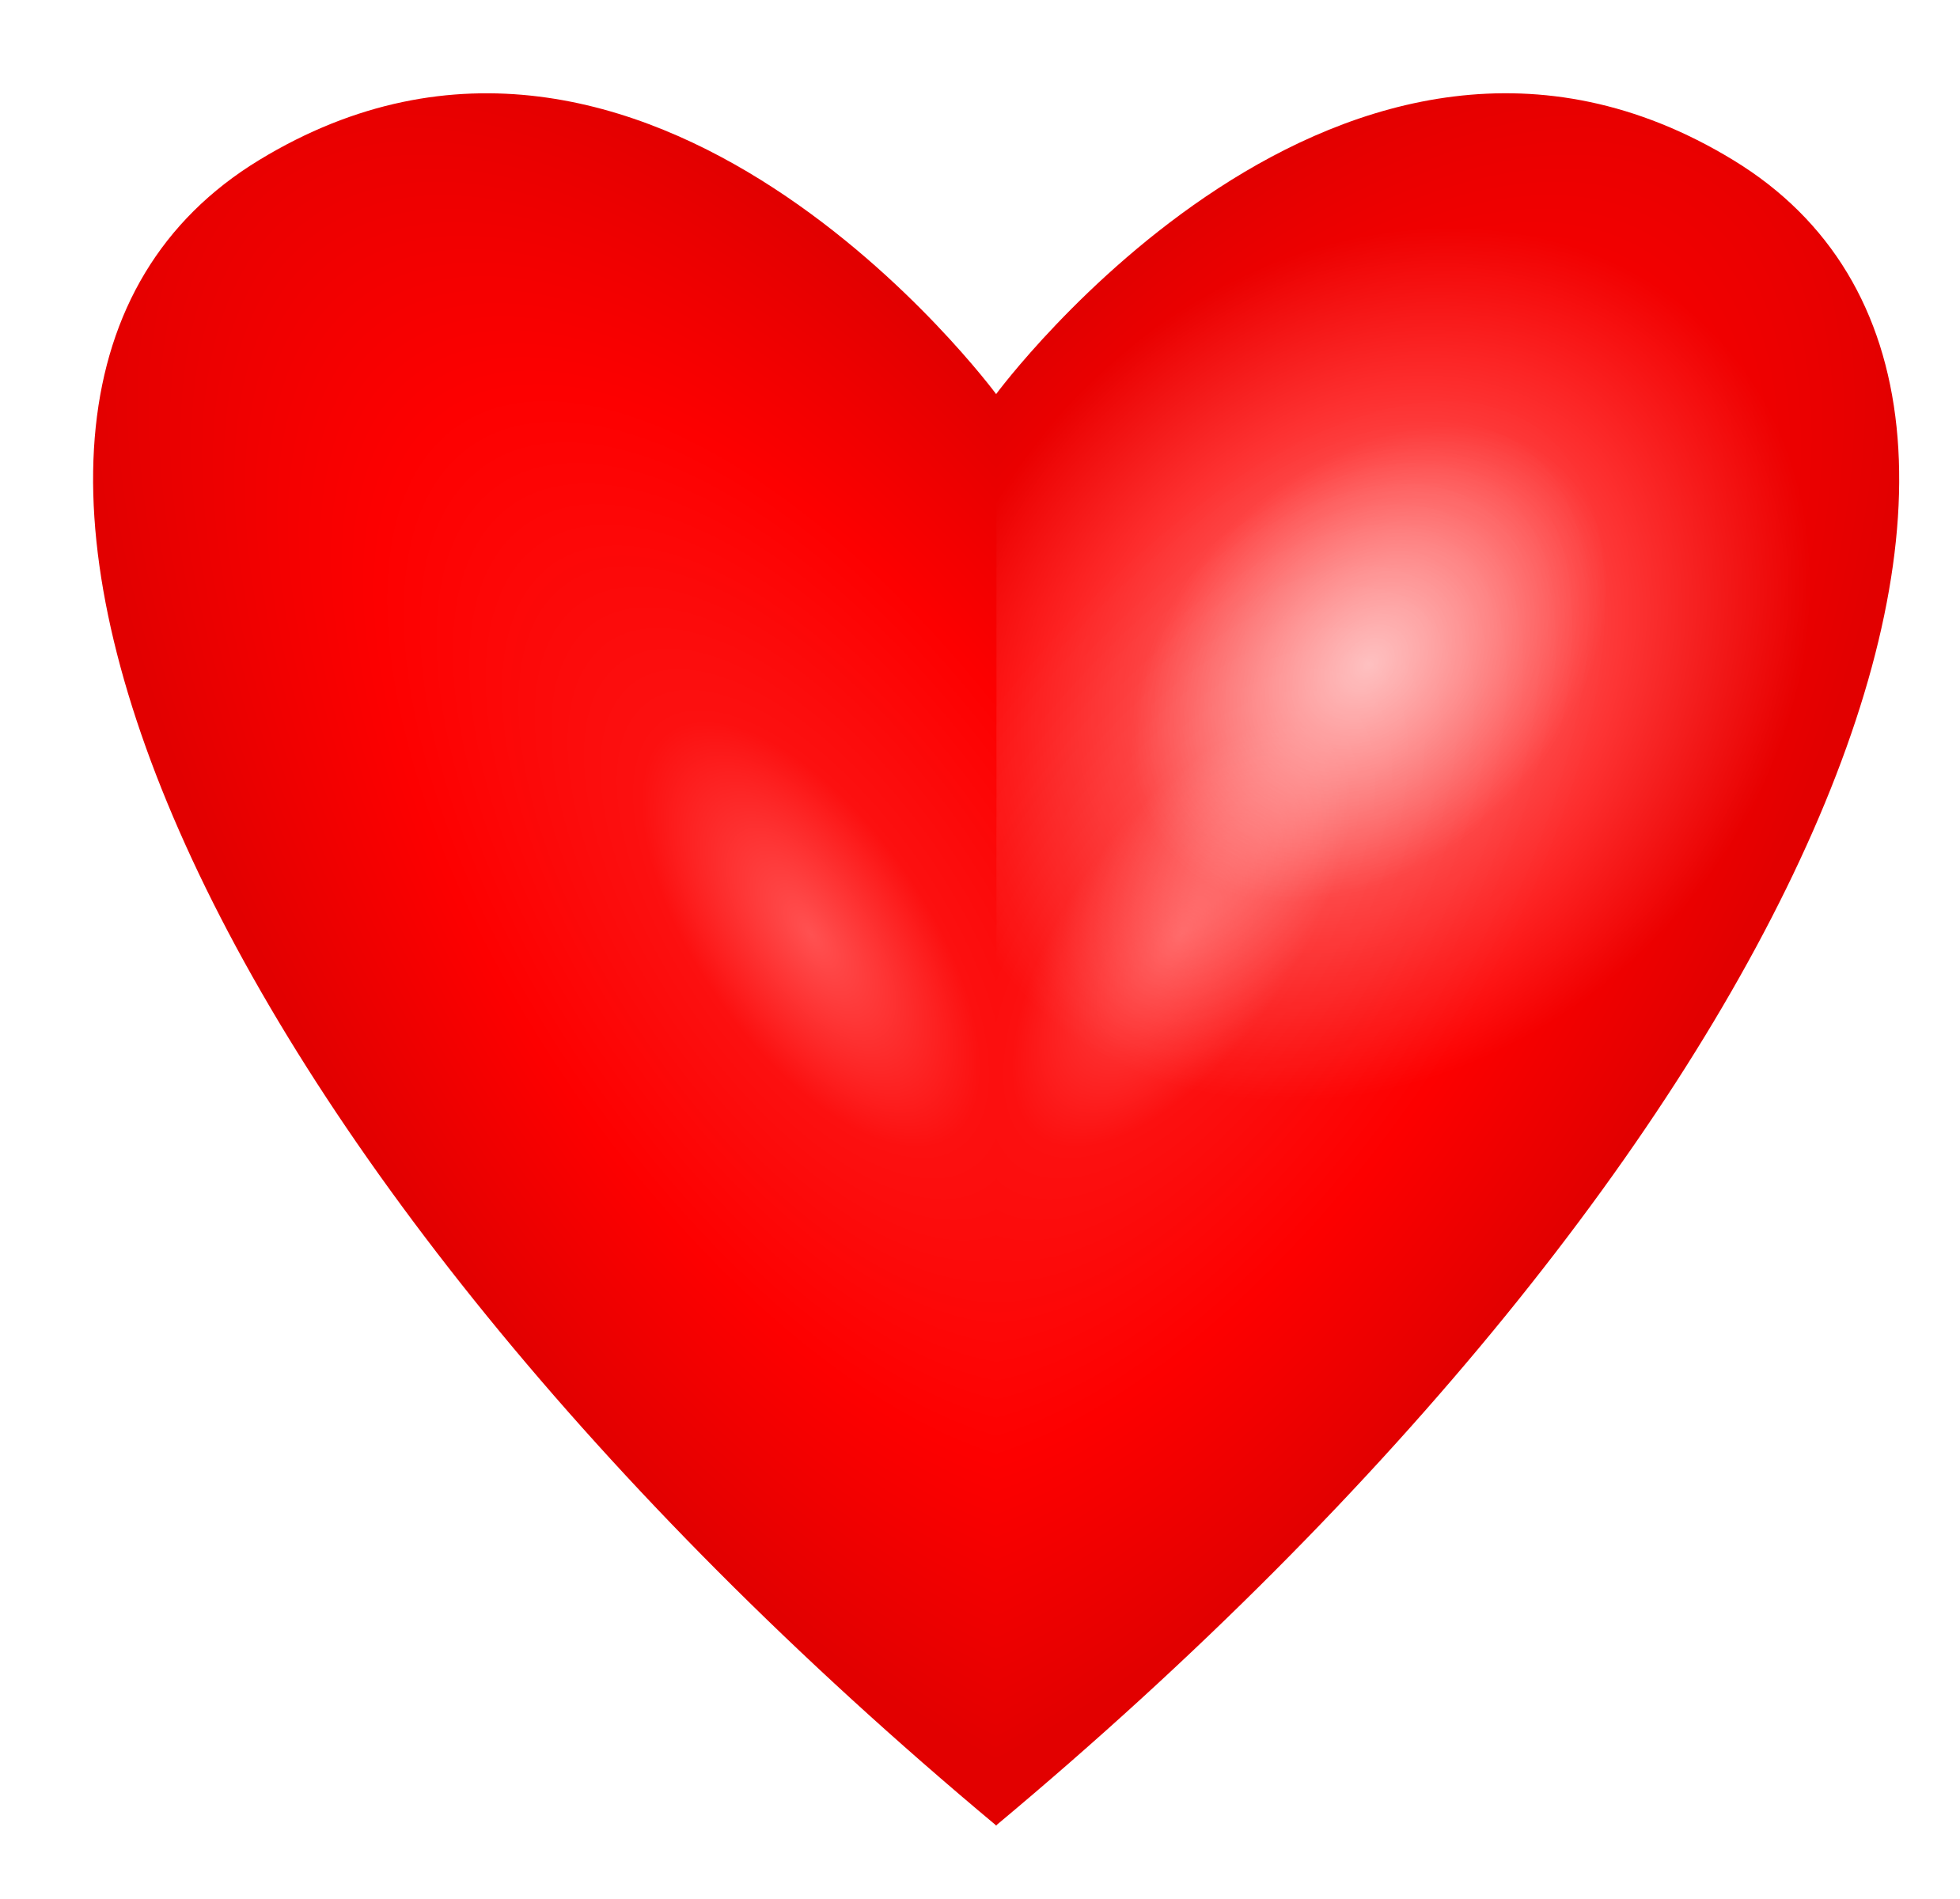 Heart big image png. Hearts clipart love